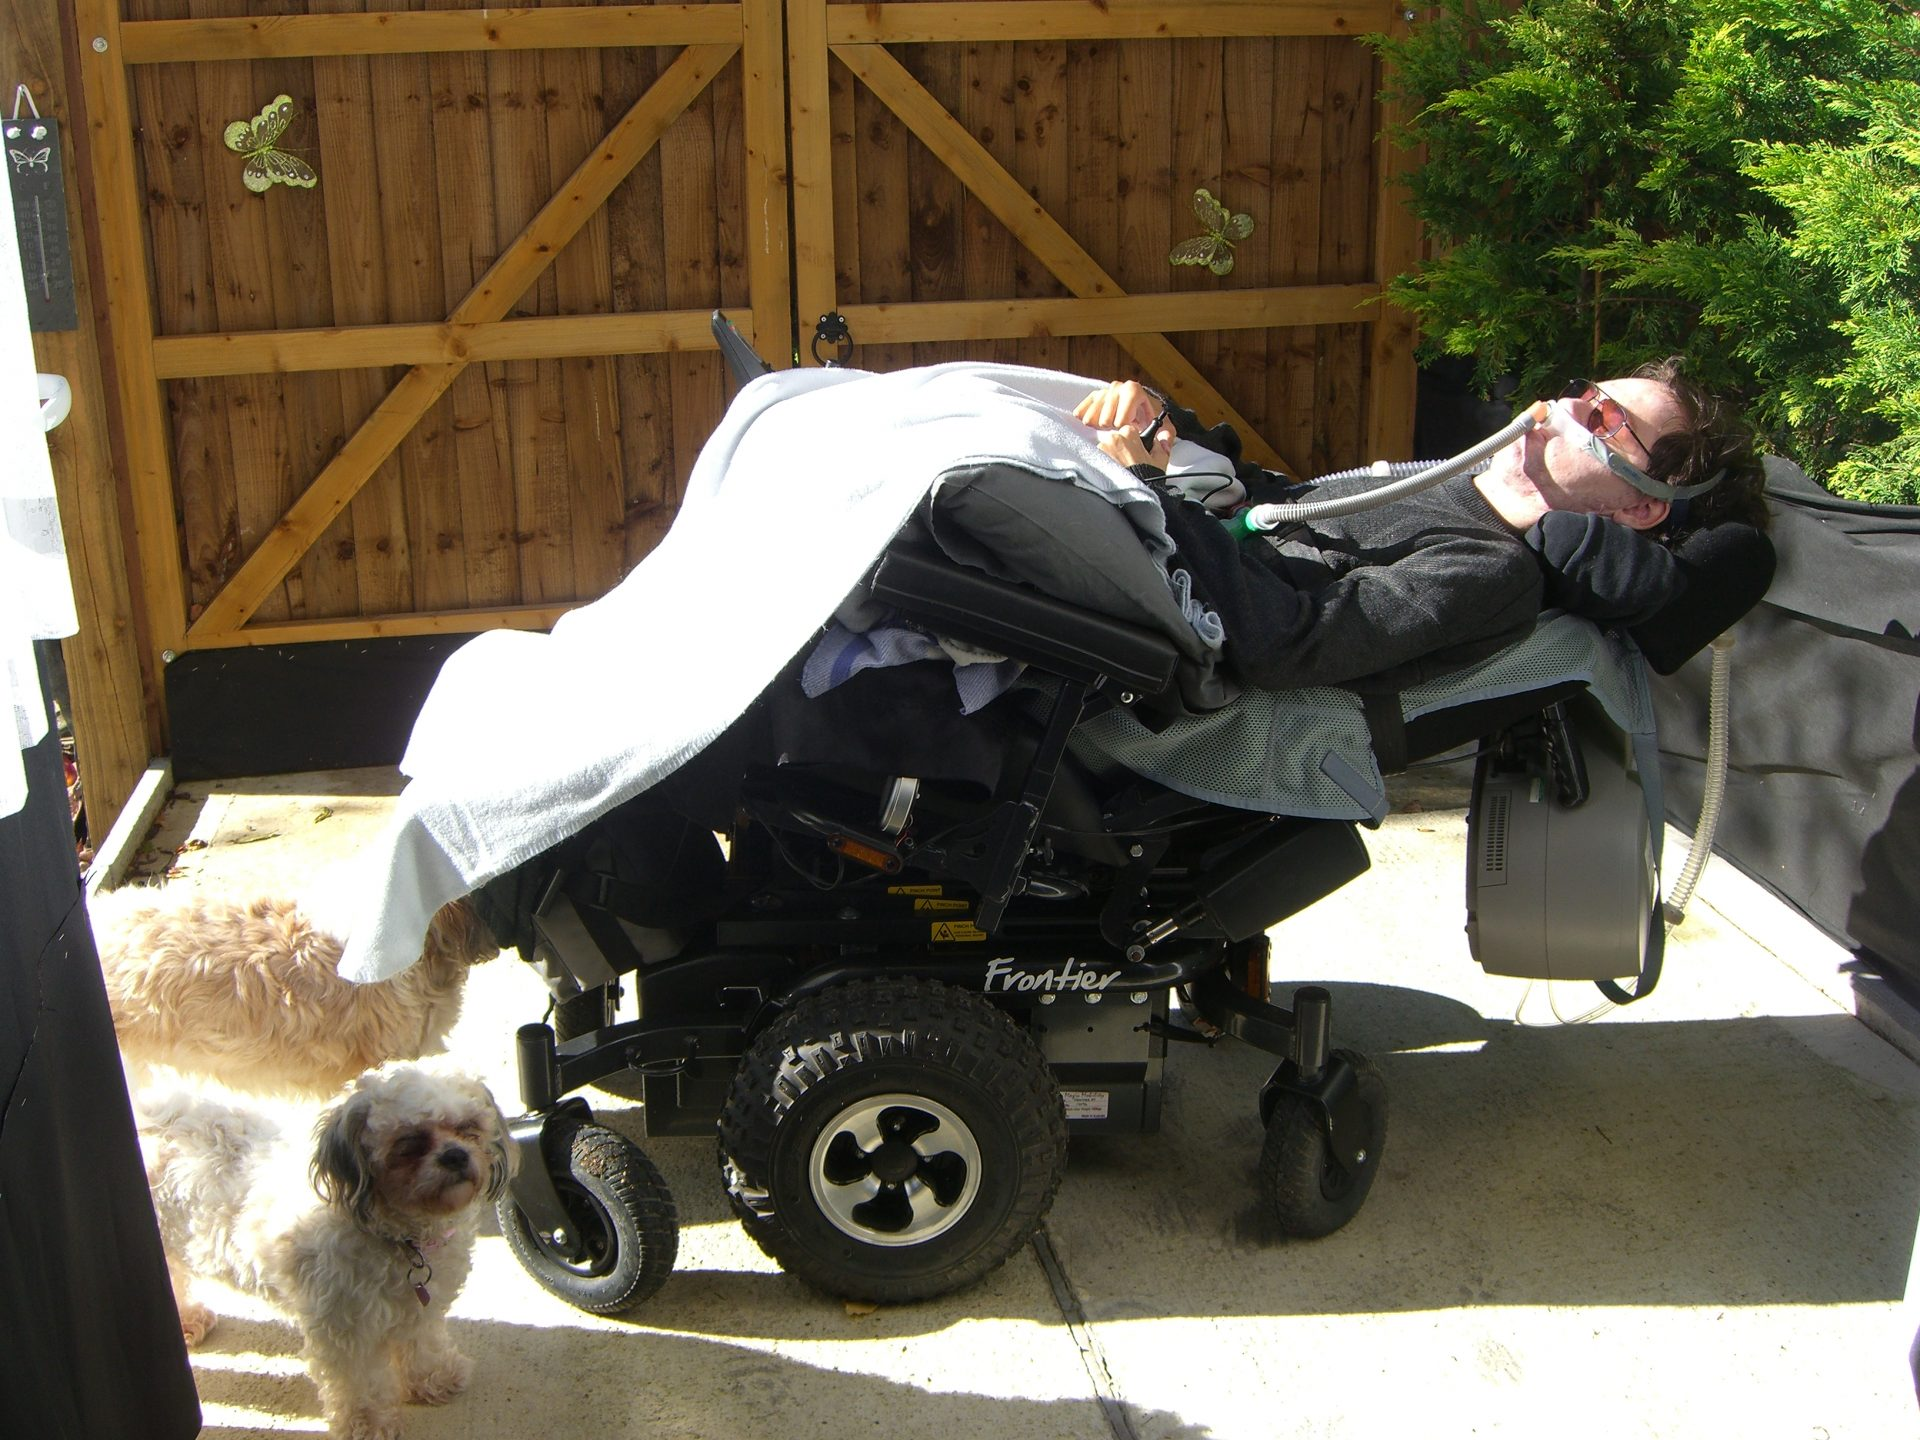 Daniel Baker reclined in his new wheelchair with a blanket draped over him